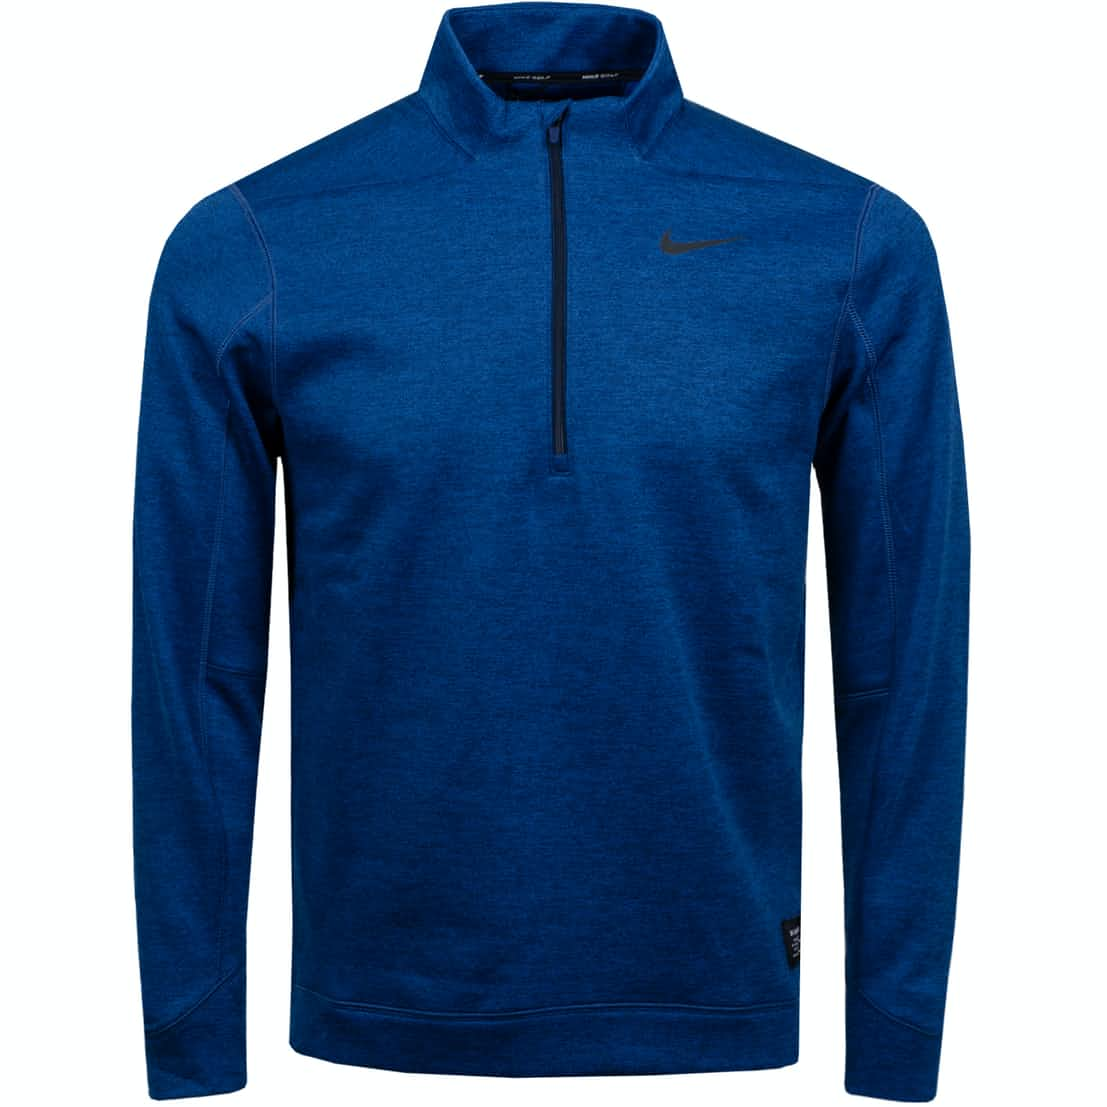 Therma Repel Half Zip Obsidian - AW19